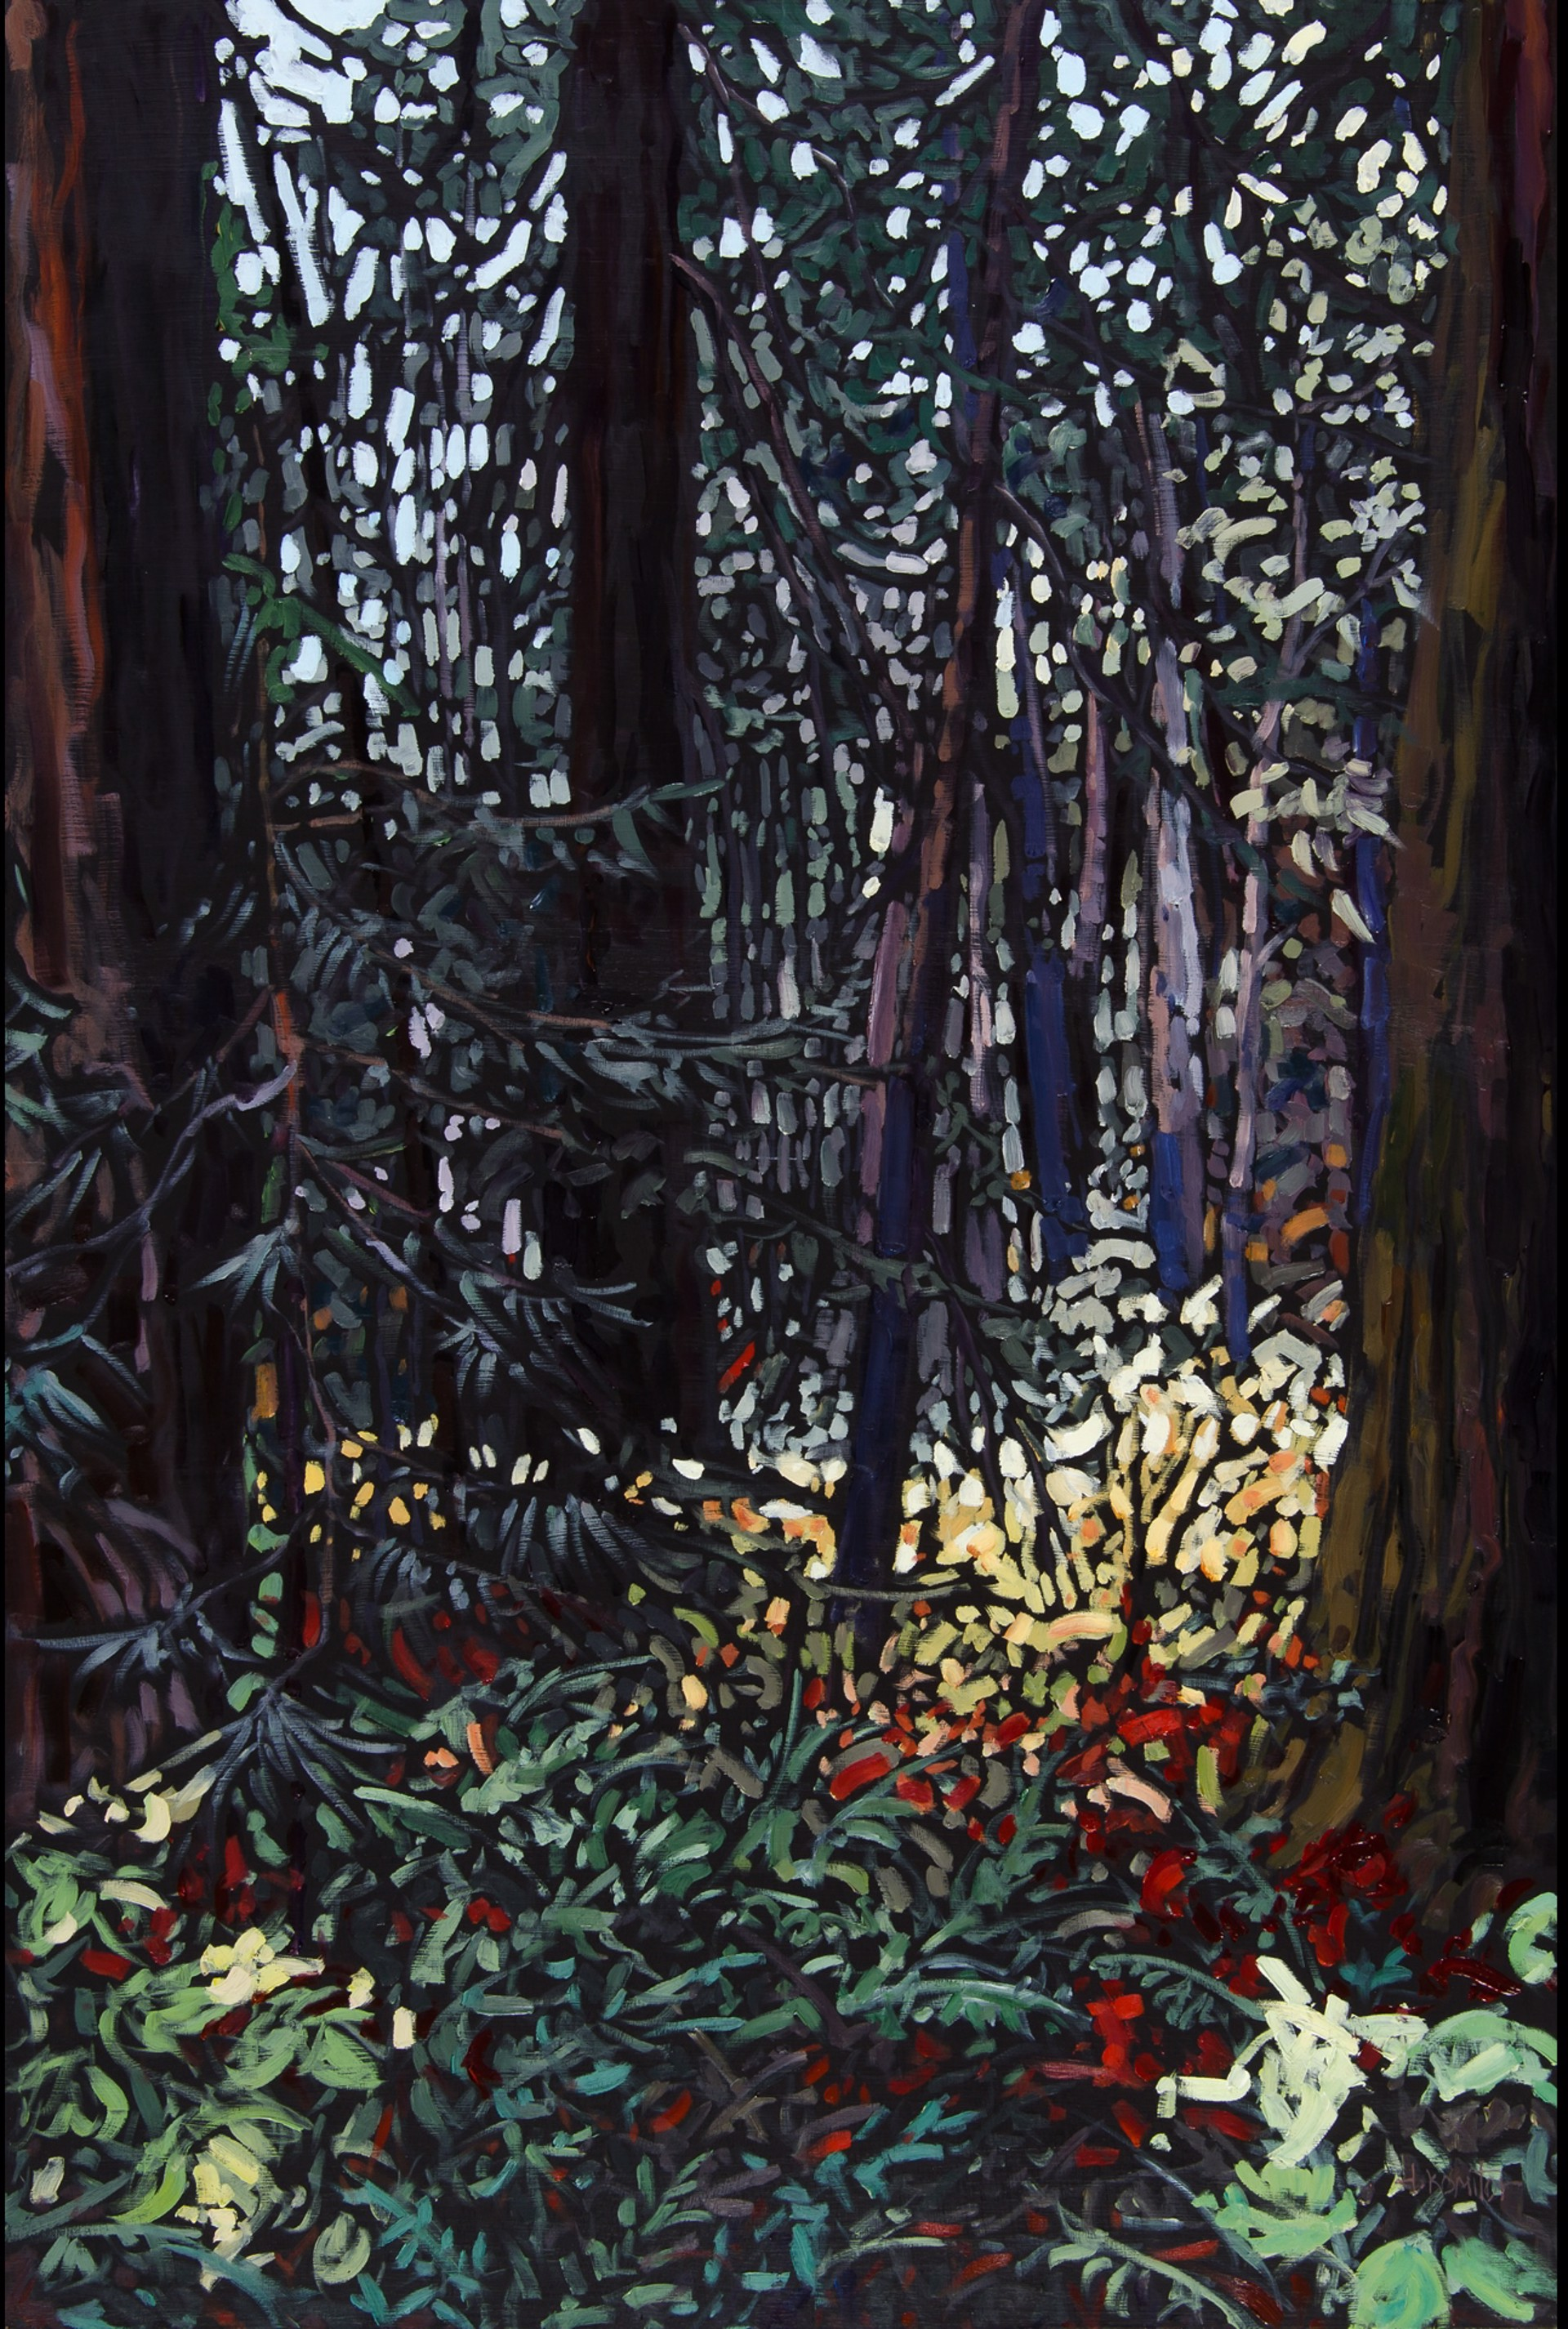 Dancing Light On the Forest Floor by Deb Komitor